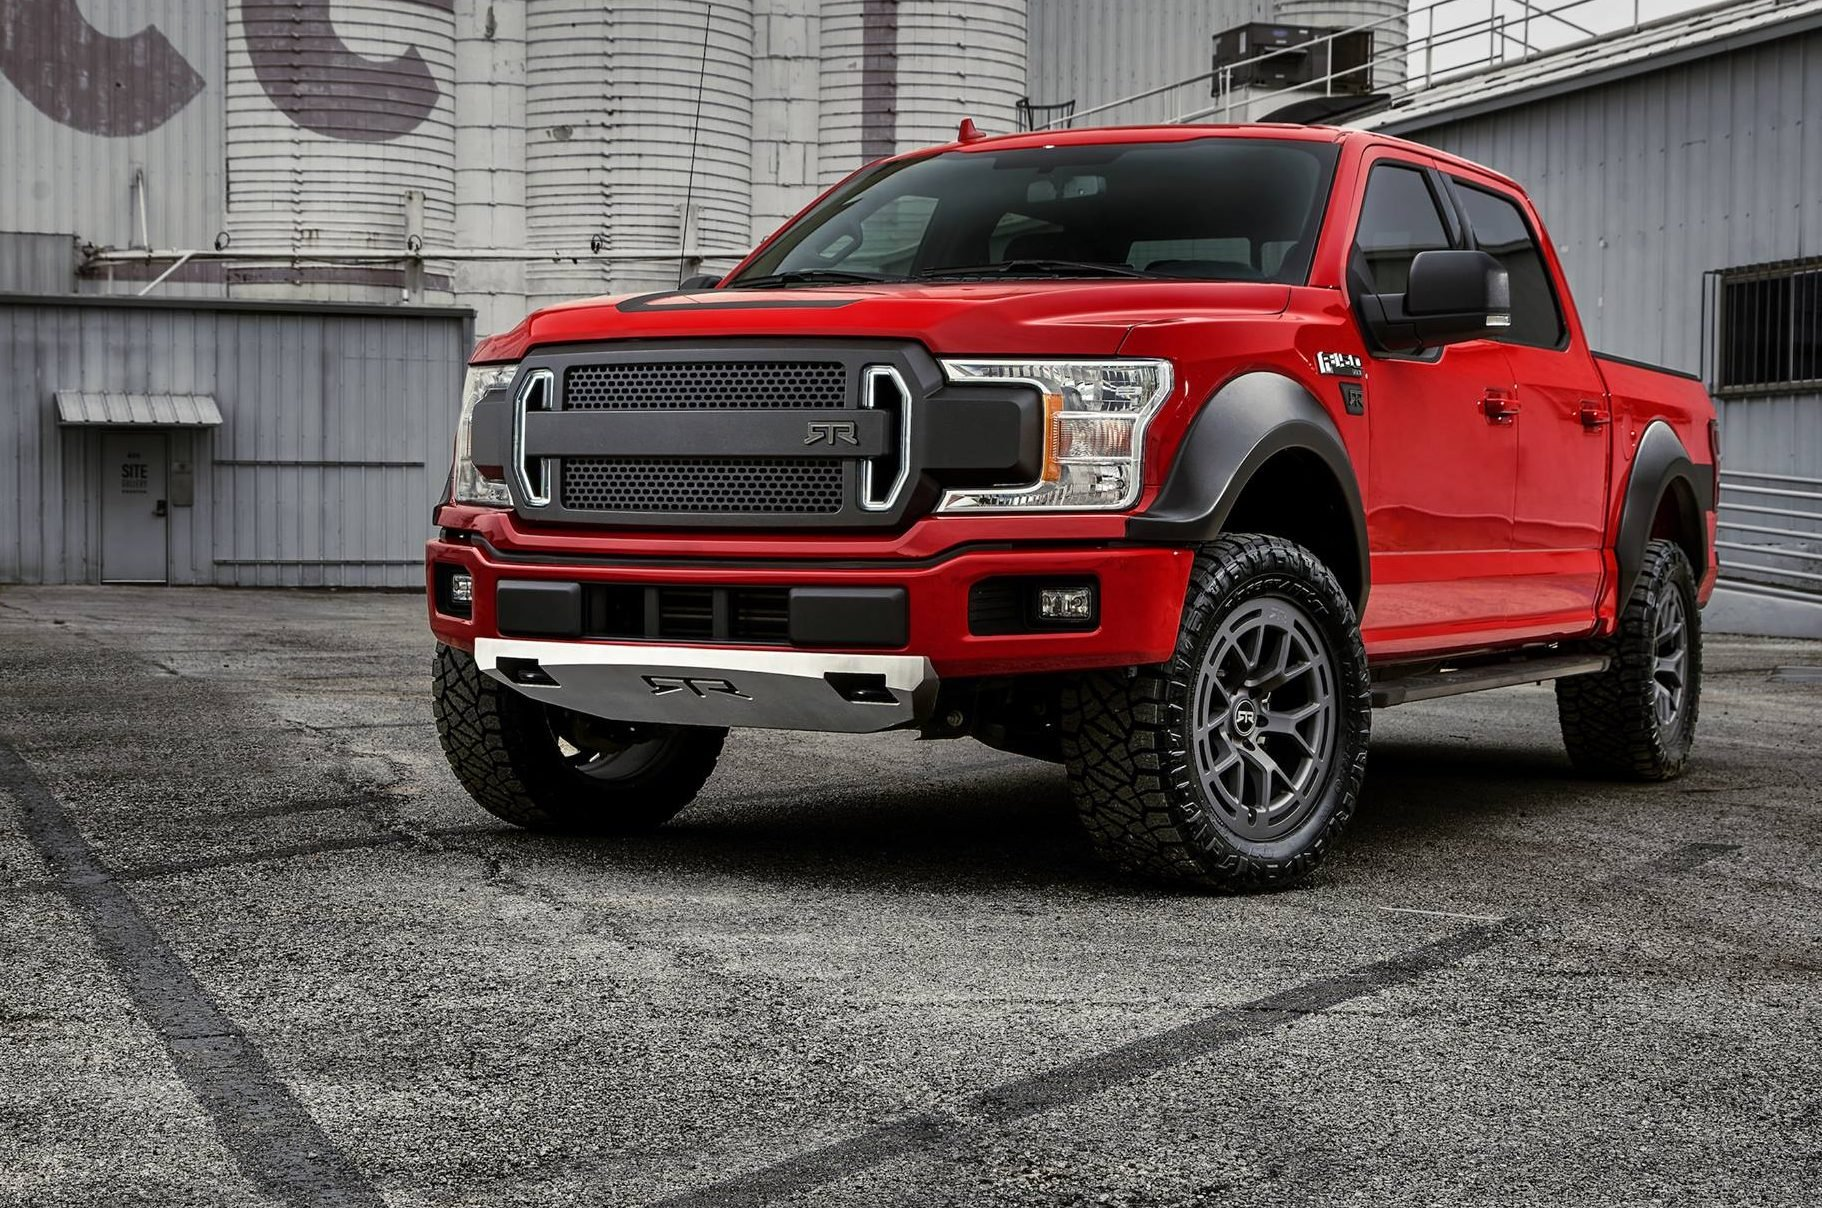 RTR Adds F-150 to Vehicle Lineup. May Not be As Ready to Rock as Their Mustangs